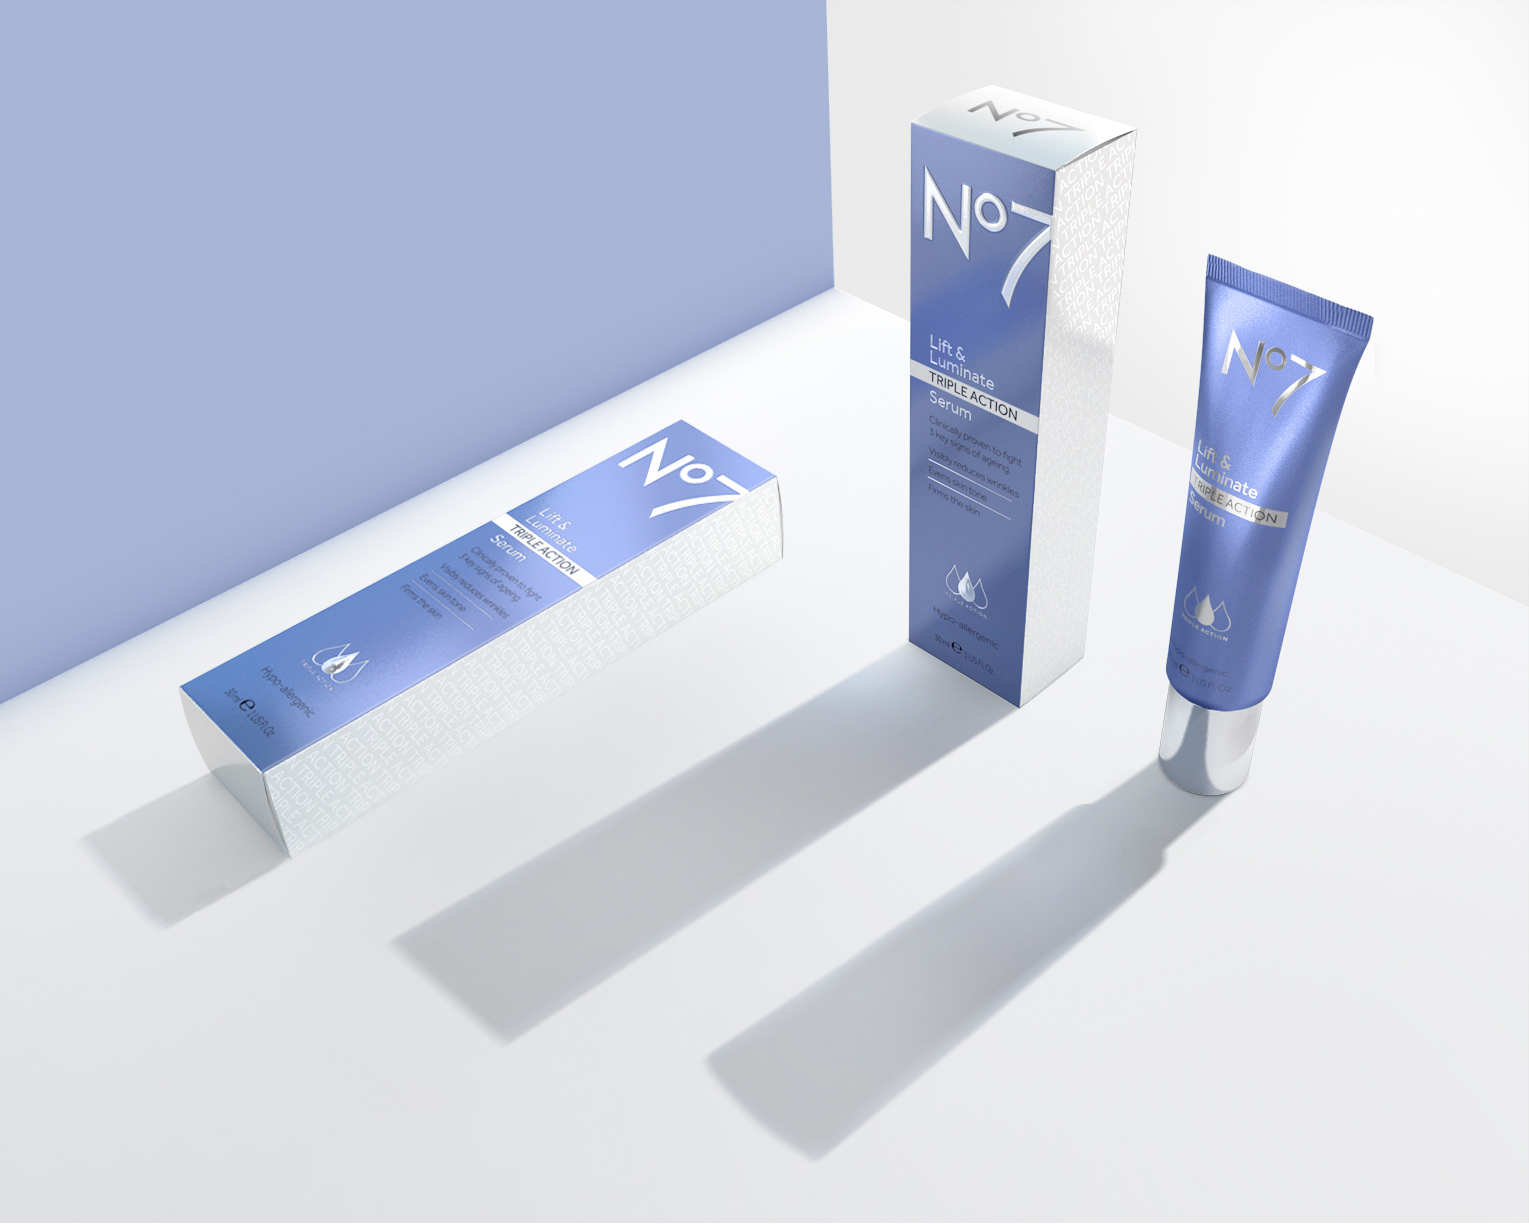 No7 Lift + LUMINATE Directional Light Comp